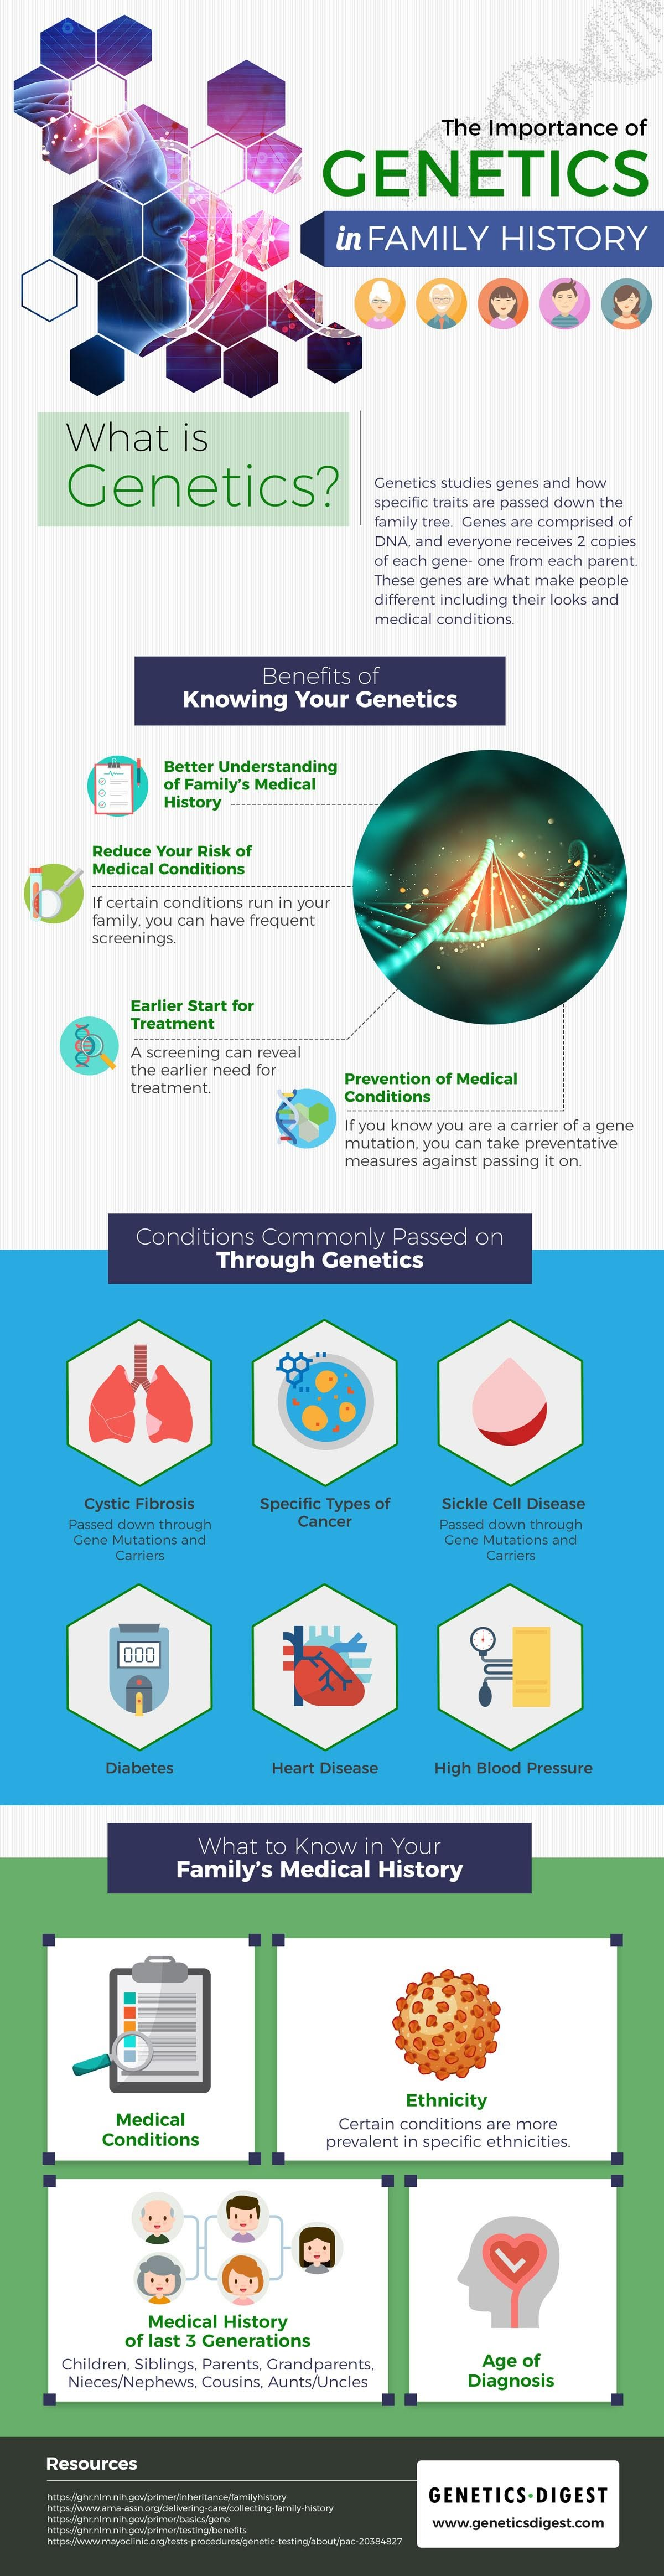 The Importance of Genetics in Family History #Infographic